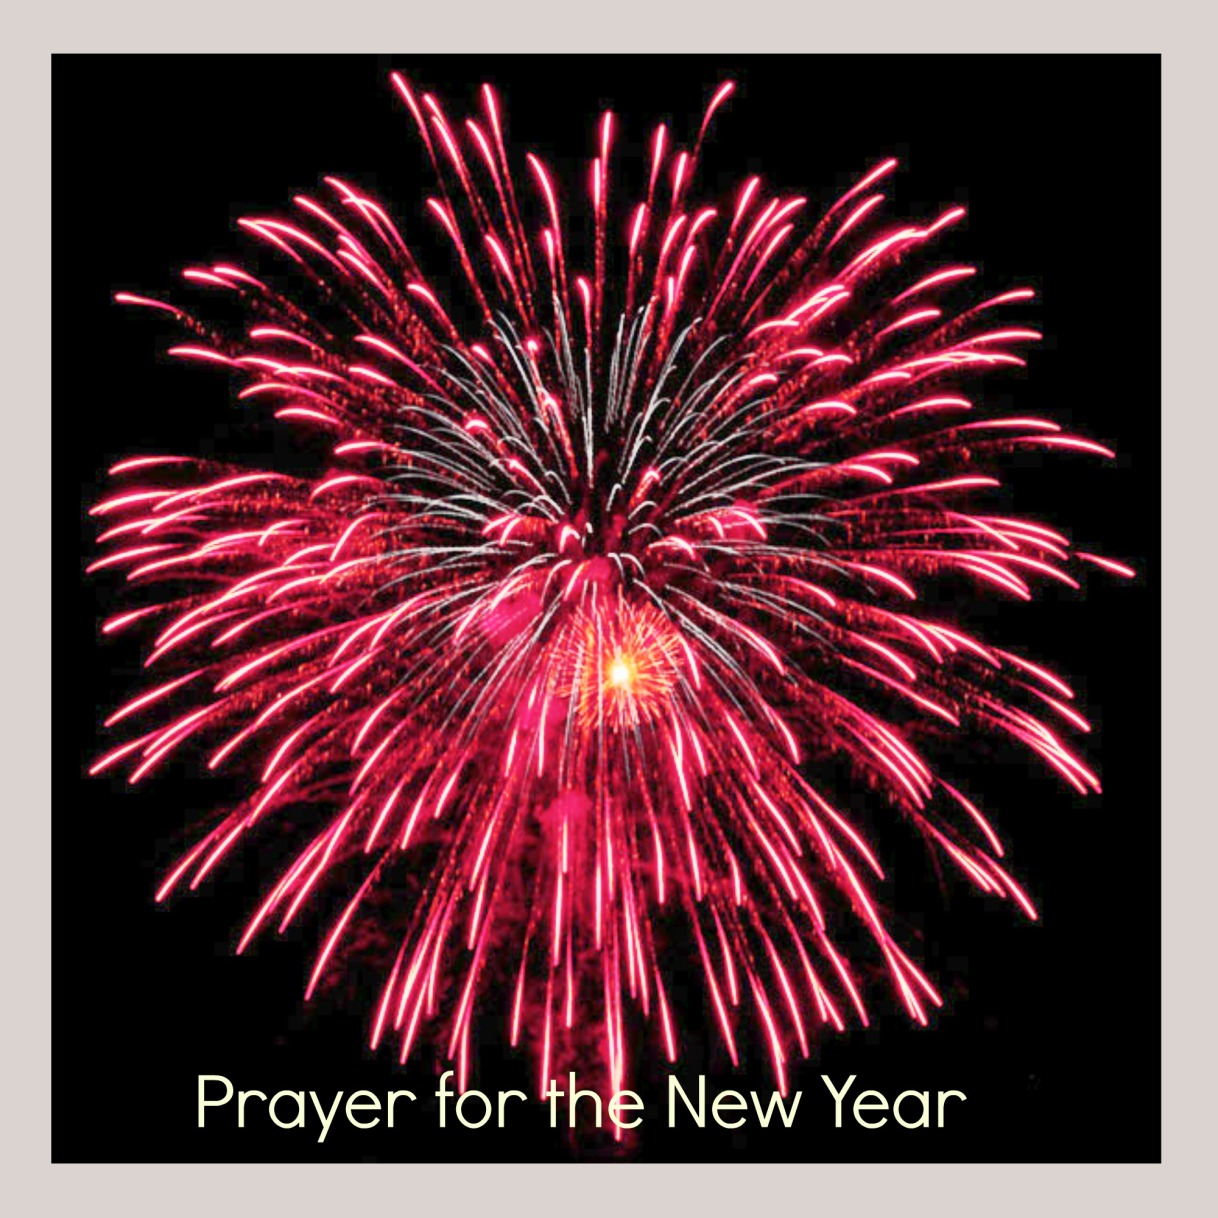 Prayer for the NewYear